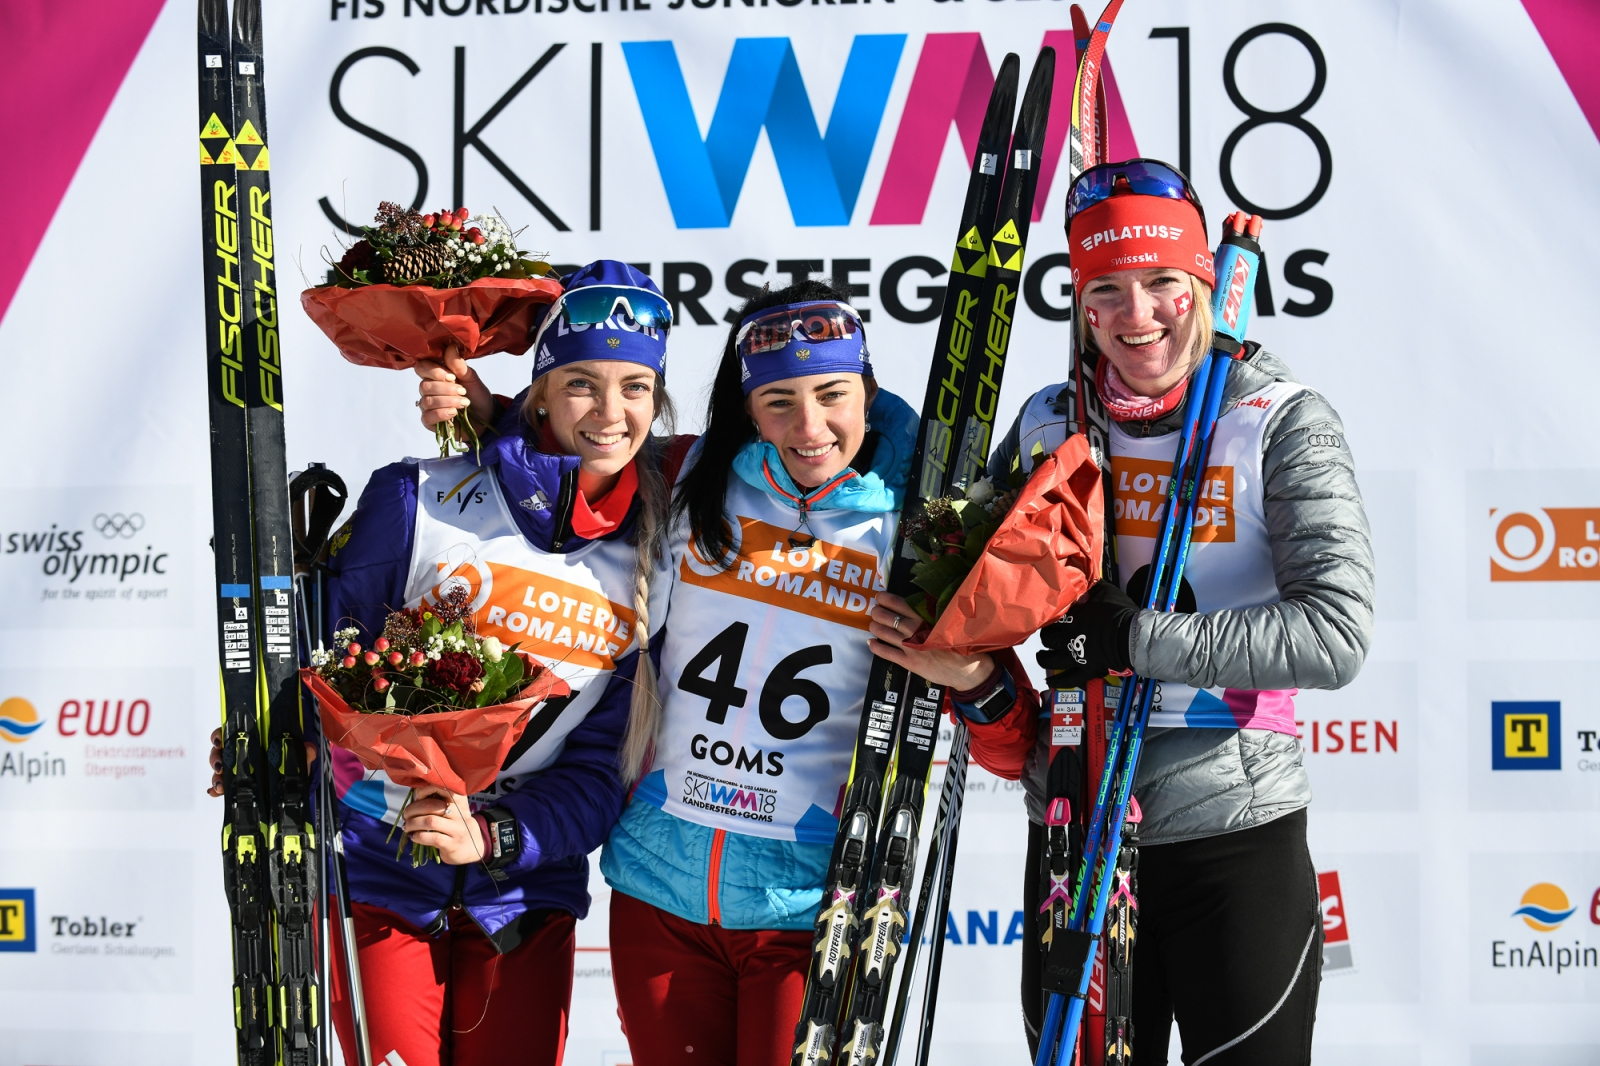 https://fasterskier.com/wp-content/blogs.dir/1/files/2018/01/1517397547-JWSC2018_Classic_U23_Ladies_31.01.2018_00456.jpg